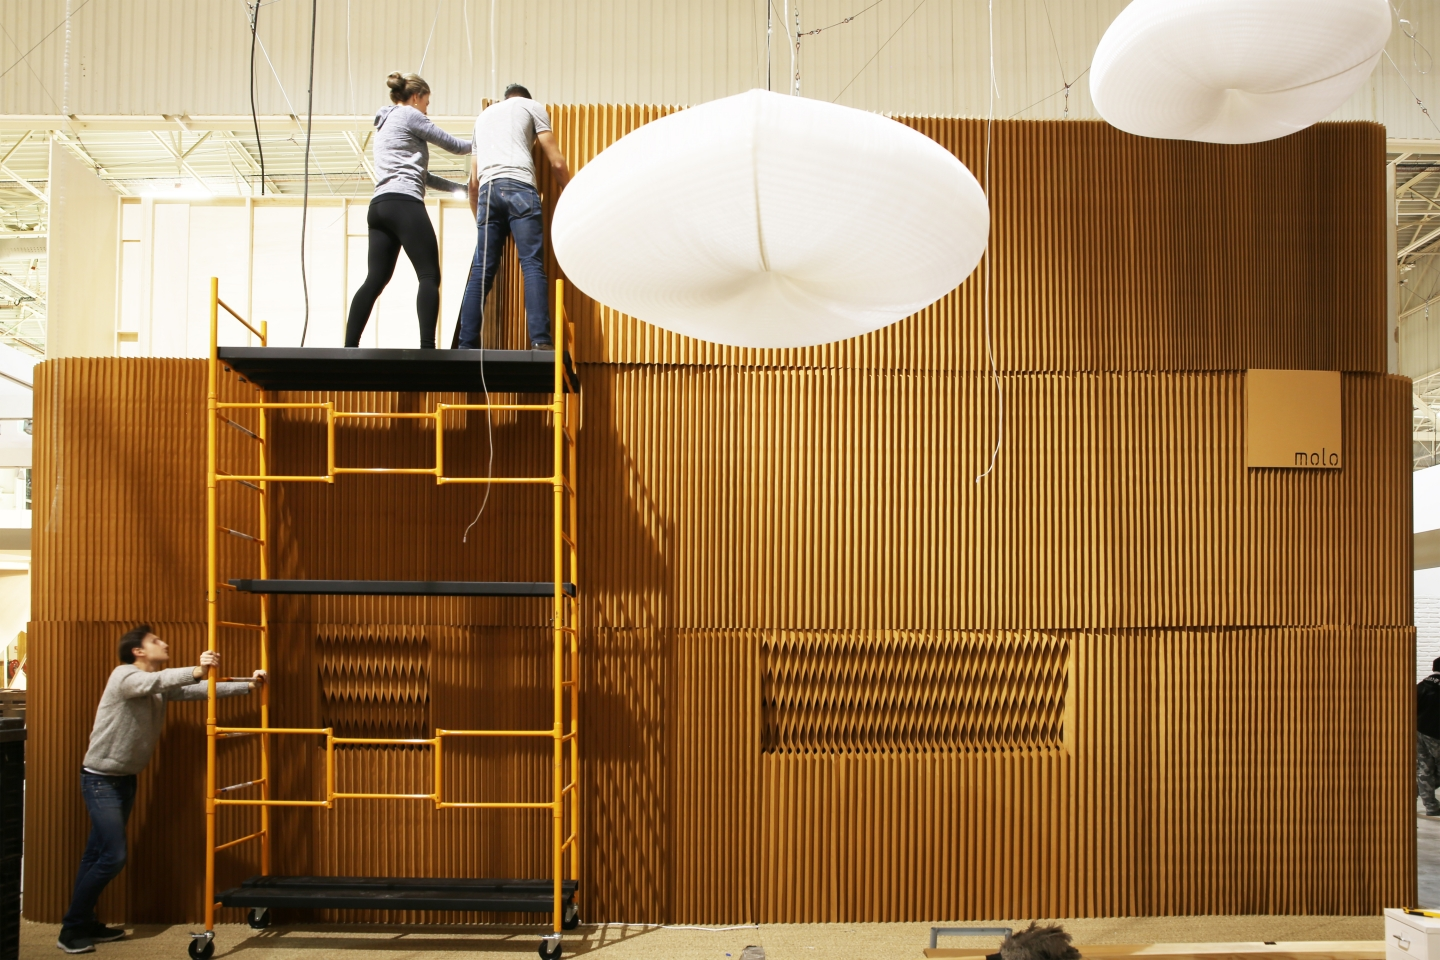 two people on cloud lighting and honeycomb paper furniture by molo - a scaffold set up stacks of molo's paper softwall for the Maison & Objet 2015 installation